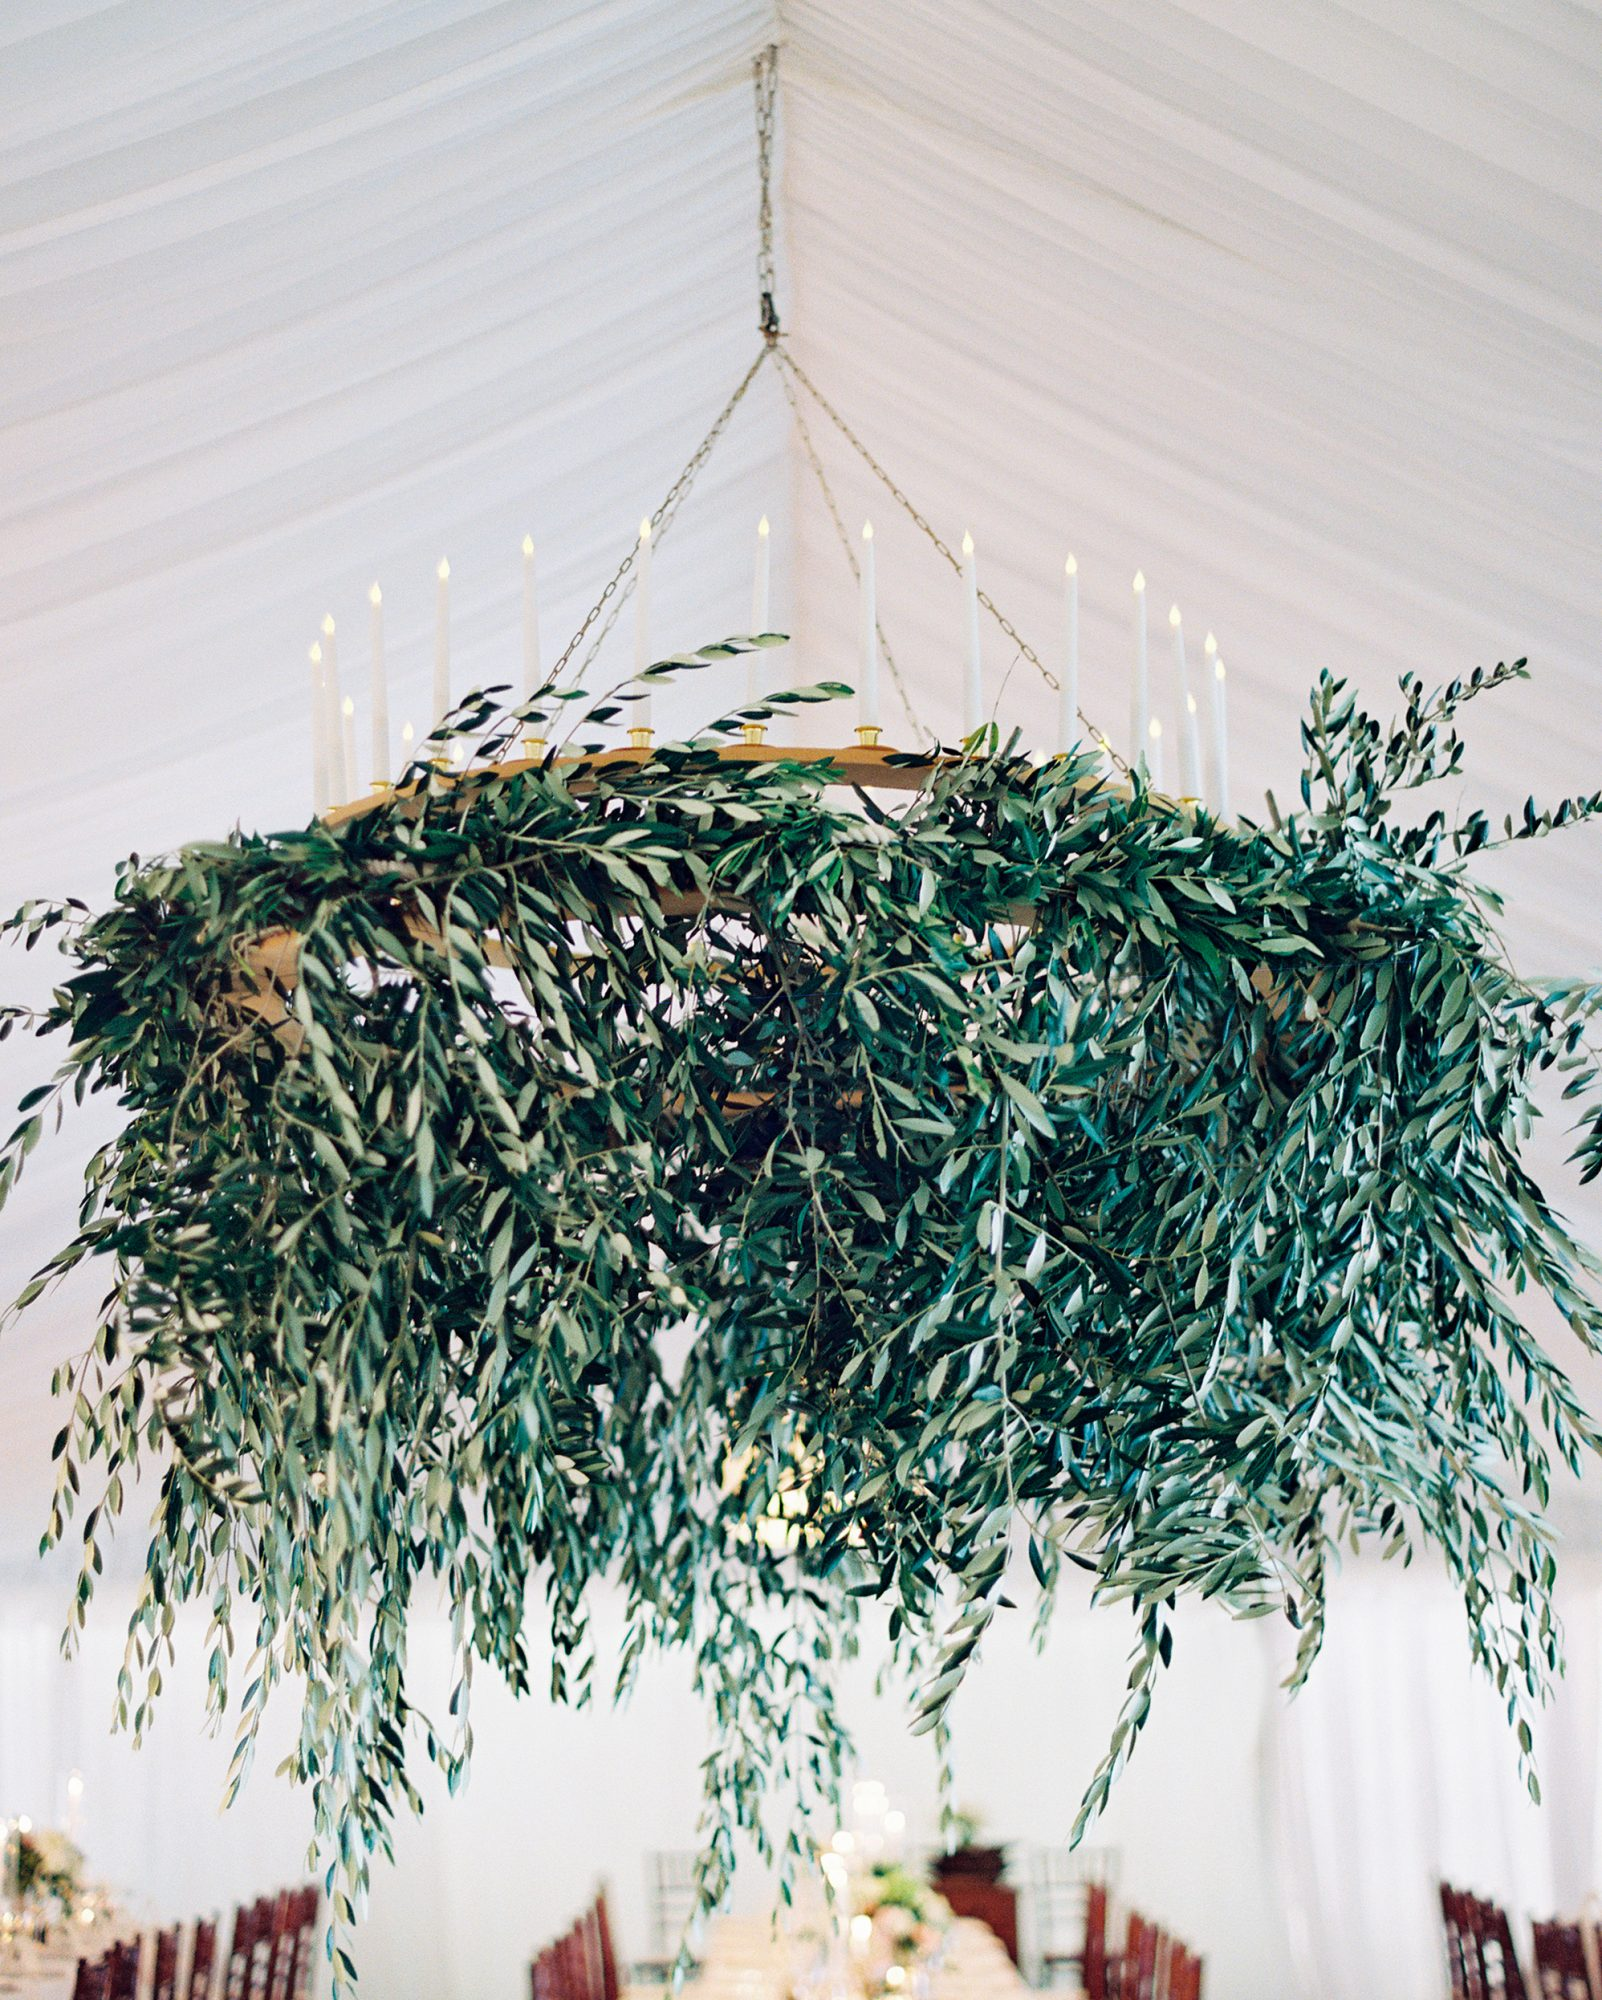 jemma-michael-wedding-chandelier-002659011-s112110-0815.jpg